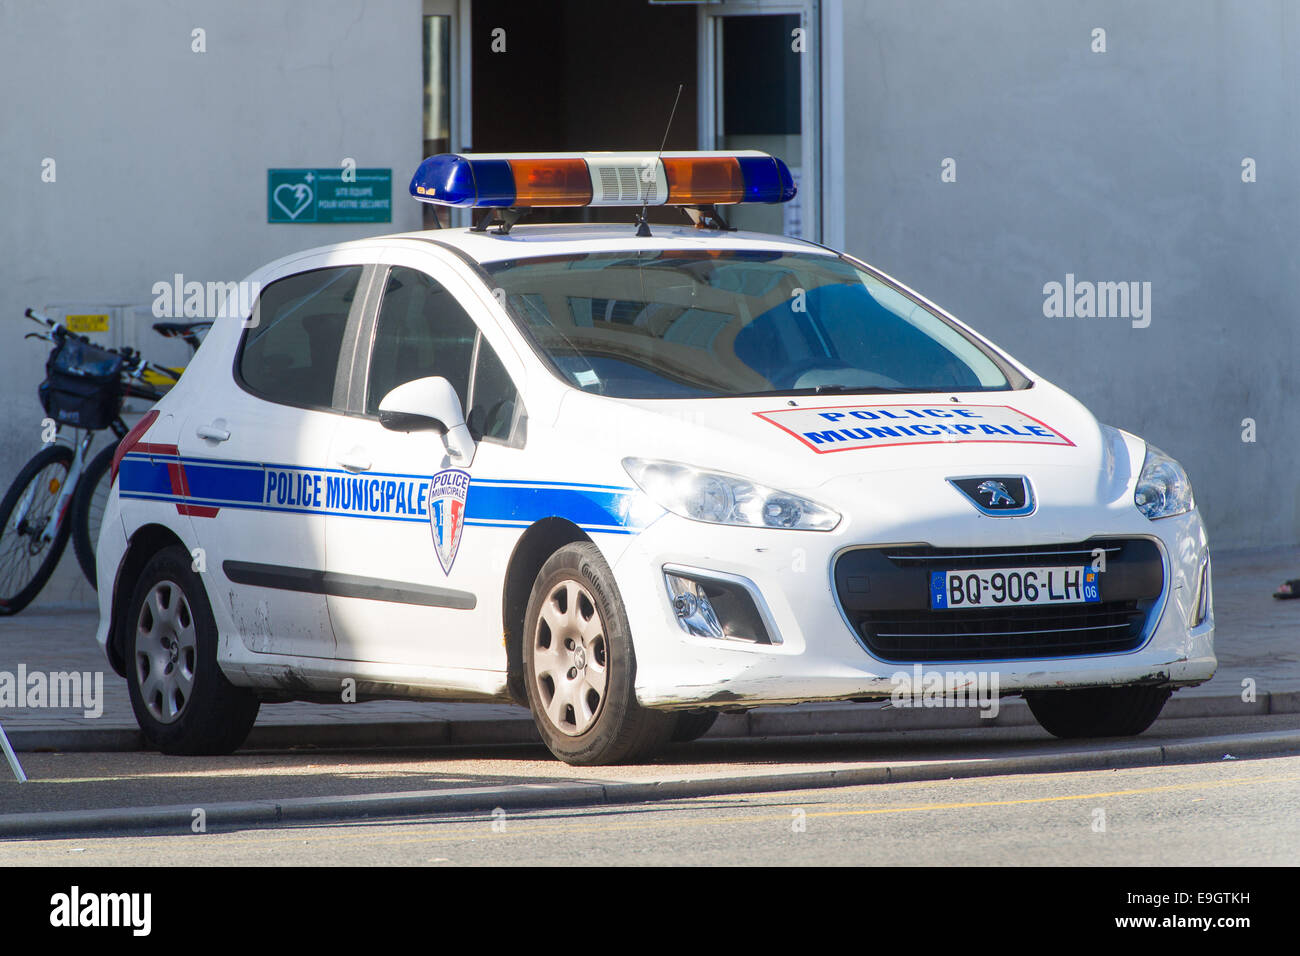 A French Police Car In Cannes France Stock Photo 74743973 Alamy